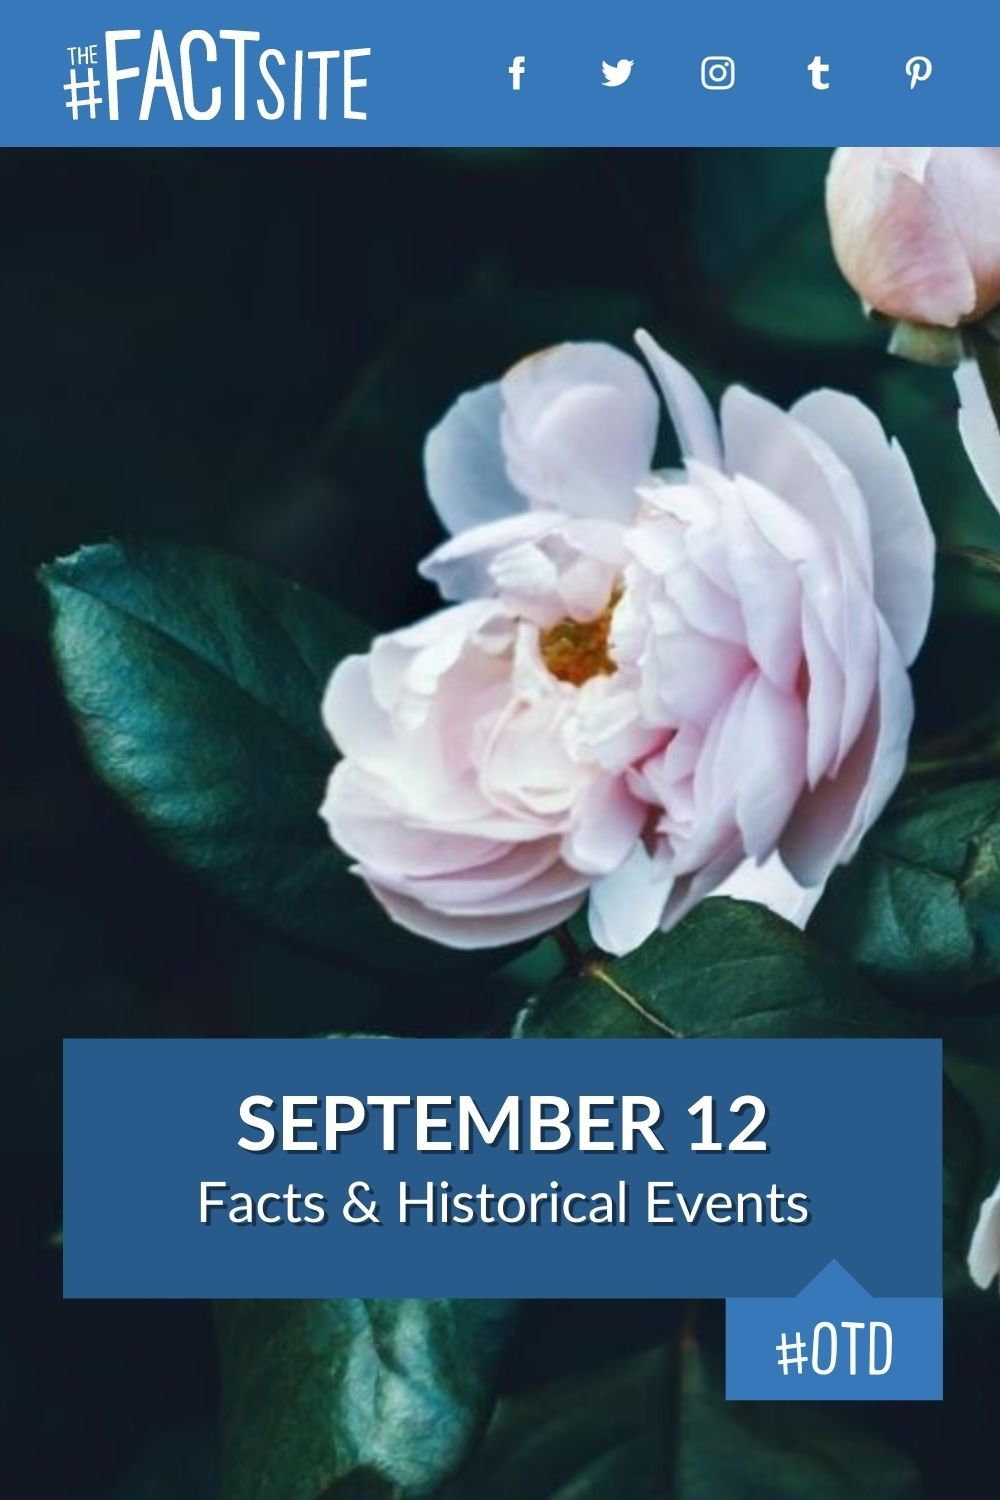 Facts & Historic Events That Happened on September 12